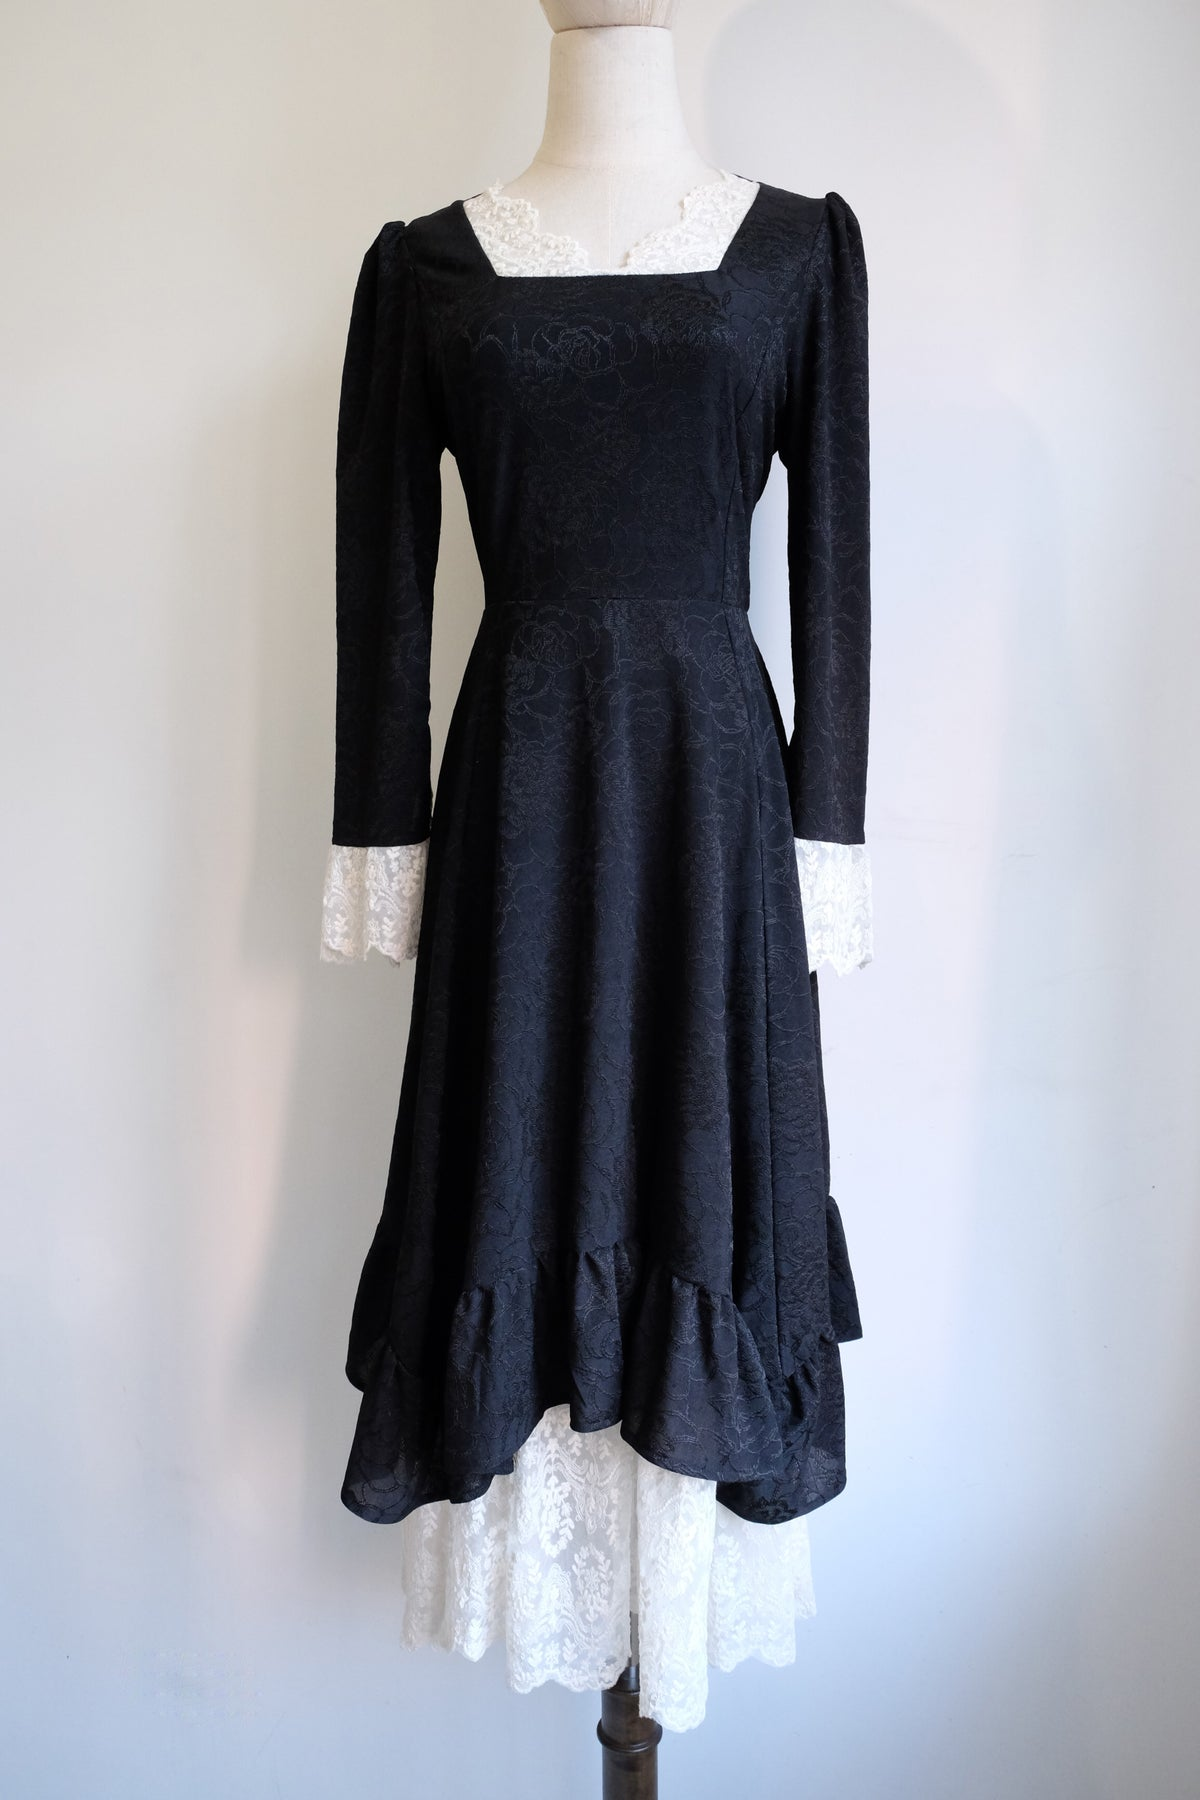 Image of SAMPLE SALE - Unreleased Dress 22